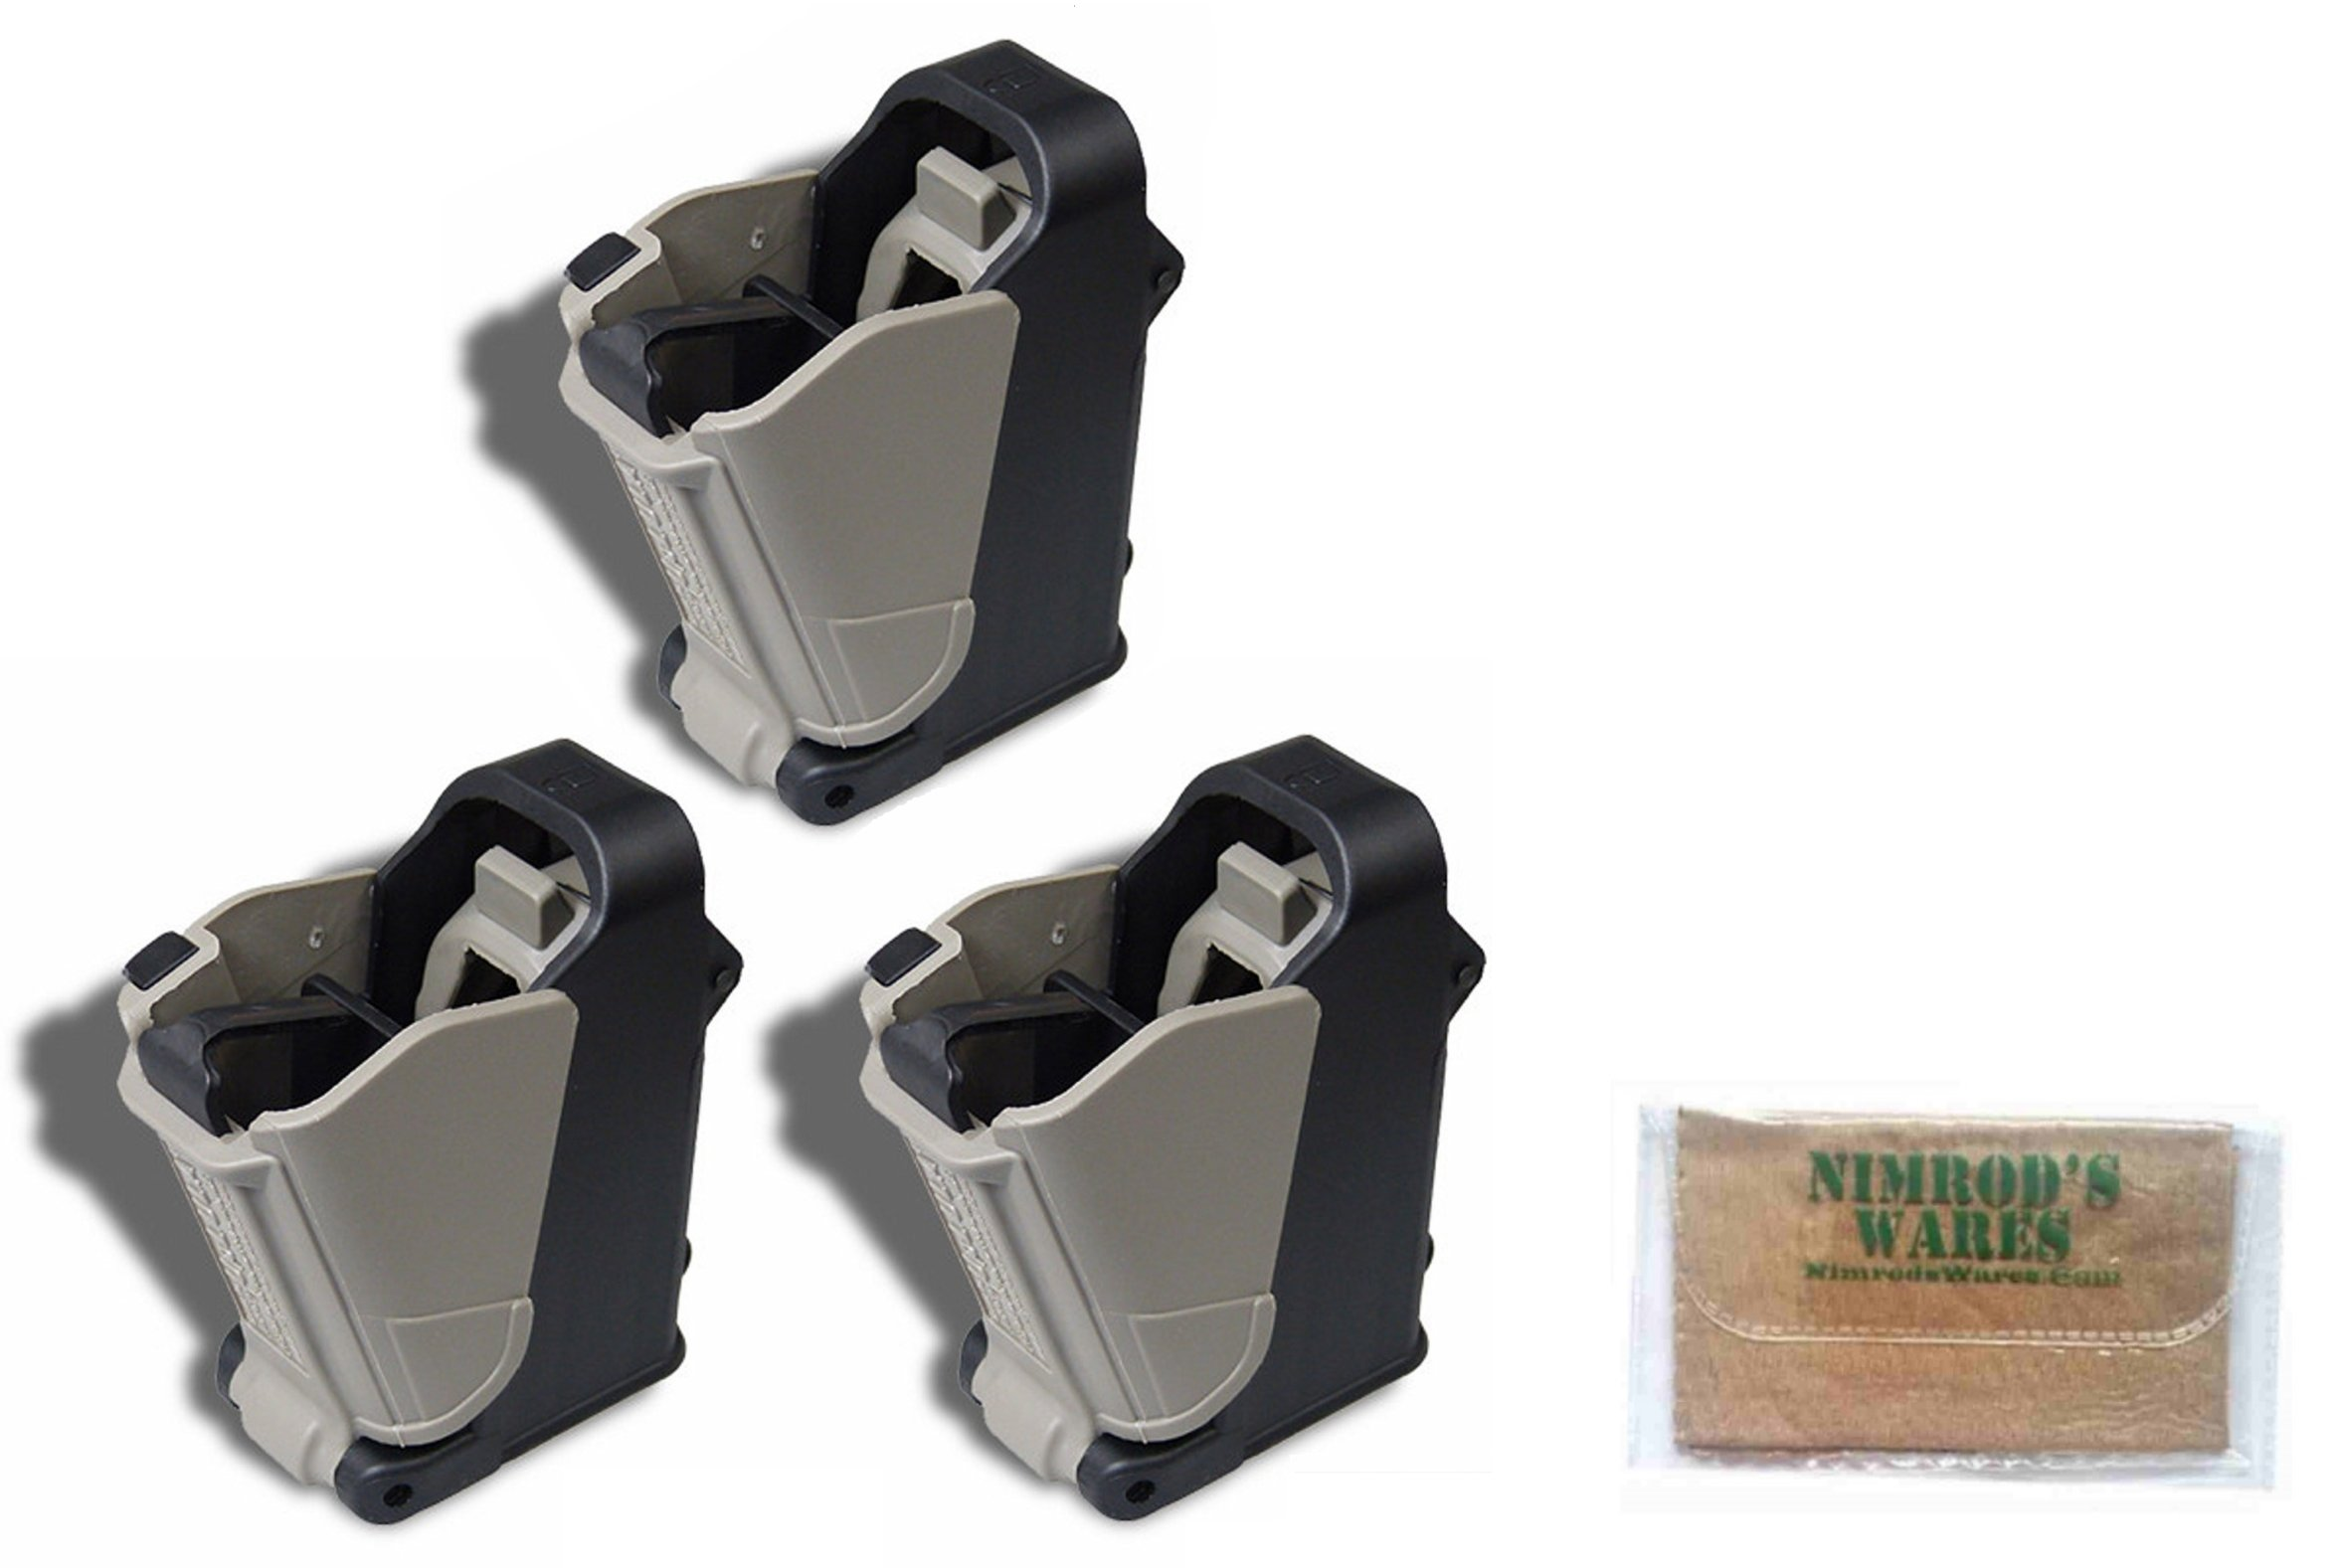 Nimrod's Wares 3-Pack MAGLULA 22LR Double-Stack+Converted Magazine Loader/Unloaders UP62B Microfiber Cloth